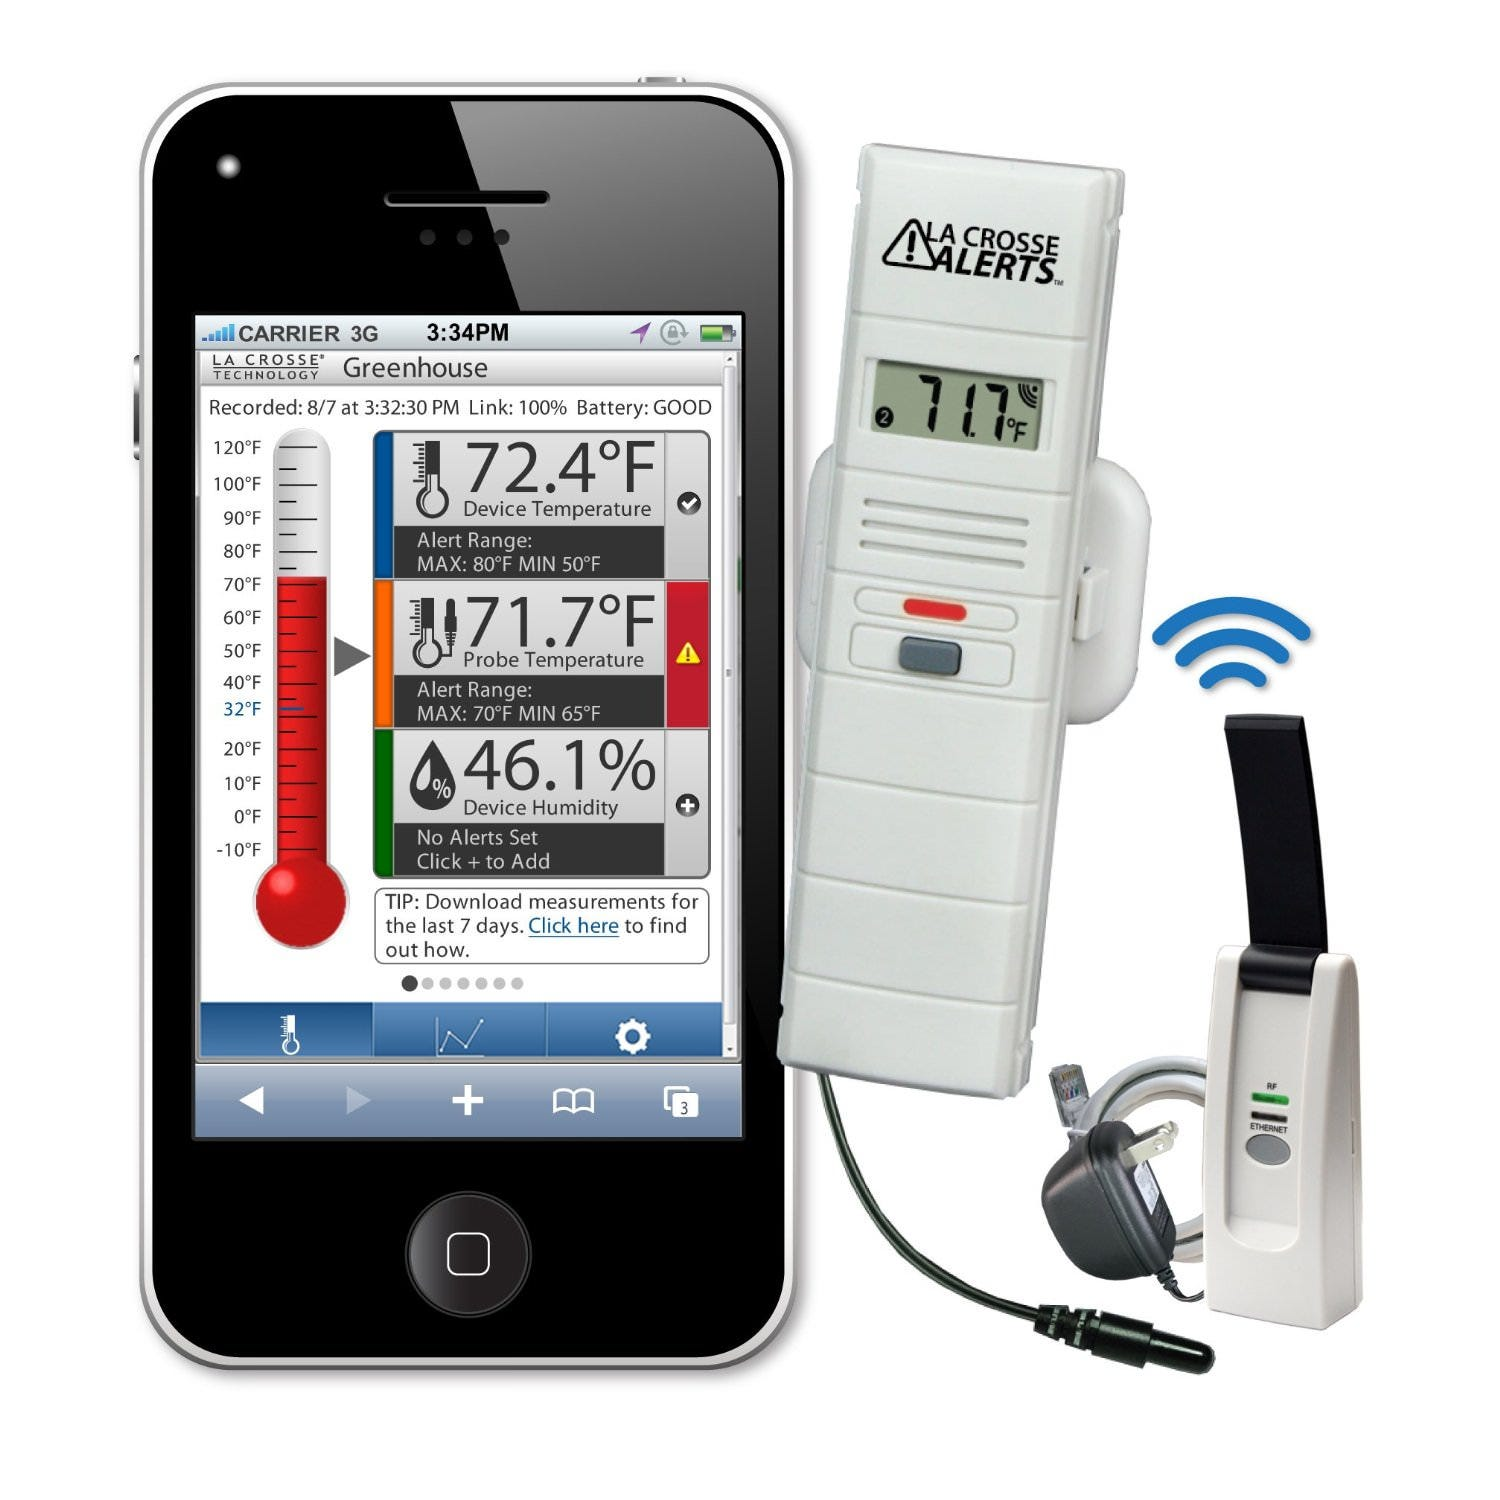 La Crosse Temperature & Humidity Wireless Alert System - Text & Email Function - New App-Based Model: 926-25101-WGB Remotely monitor sensors 24/7 using a web browser*. Perfect for...Backyard temperature and humidity; Plants, gardens and greenhouses; Refrigerators, freezers; Food storage; Sensitive electronics; Outdoor pets and livestock; and so much more Temperature and humidity measures: (1) Ambient air temperature; (2) Ambient humidity; (3) Probe temperature Temperature range: -40°F to 140°F Includes: sensor, internet gateway with LAN cable & AC adapter, DRY probe Requires 2 AAA Alkaline batteries (not included) Protect people, pets, plants and valuables from dangerous temperatures and humidity with an affordable, easy to use remote monitor and alert system. La Crosse Alerts™ Temperature and Humidity Monitor by La Crosse Technology® sends custom text and e-mail alerts to notify you when the temperature or humidity exceeds your desired range, when the battery is low, or when the connection is lost. Low temperature alerts can help you prevent damage from frozen pipes, freezer burn, and protect sensitive plants and animals from harsh conditions. High alerts can help you prevent mold and mildew, prevent food spoilage, and protect plants, animals and electronics from overheating. La Crosse Alerts is your home's homepage: Use the online control panel for 24/7 monitoring anywhere with Internet. View current readings or a 7 day history graph. Change alert settings anytime or download the measurement log. You can also view current air temperature, relative humidity and probe temperature readings on the sensor's LCD. Monitor the temperature of wet or dry environments with a separate probe. Add up to 5 sensors for other areas within a 200 Ft wireless range. There are a wide variety of applications. Monitor: Backyard temperature and humidity, plants and gardens, pets or livestock, refrigerators and freezers, food storage, terrariums, books, documents and photos, basements, ga